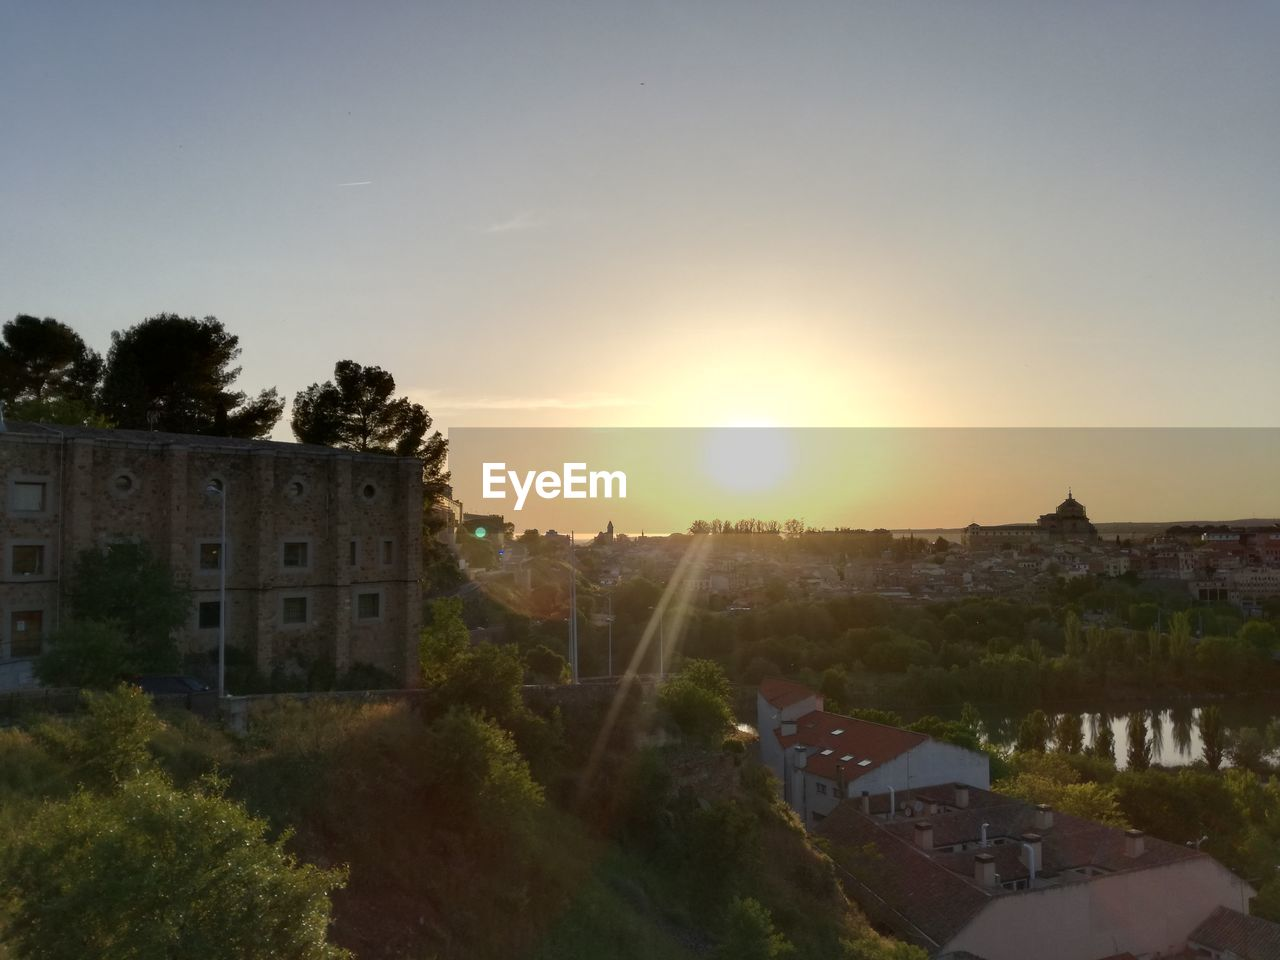 sky, architecture, building exterior, sunset, built structure, building, plant, residential district, sun, nature, tree, sunlight, house, lens flare, no people, city, outdoors, water, high angle view, townscape